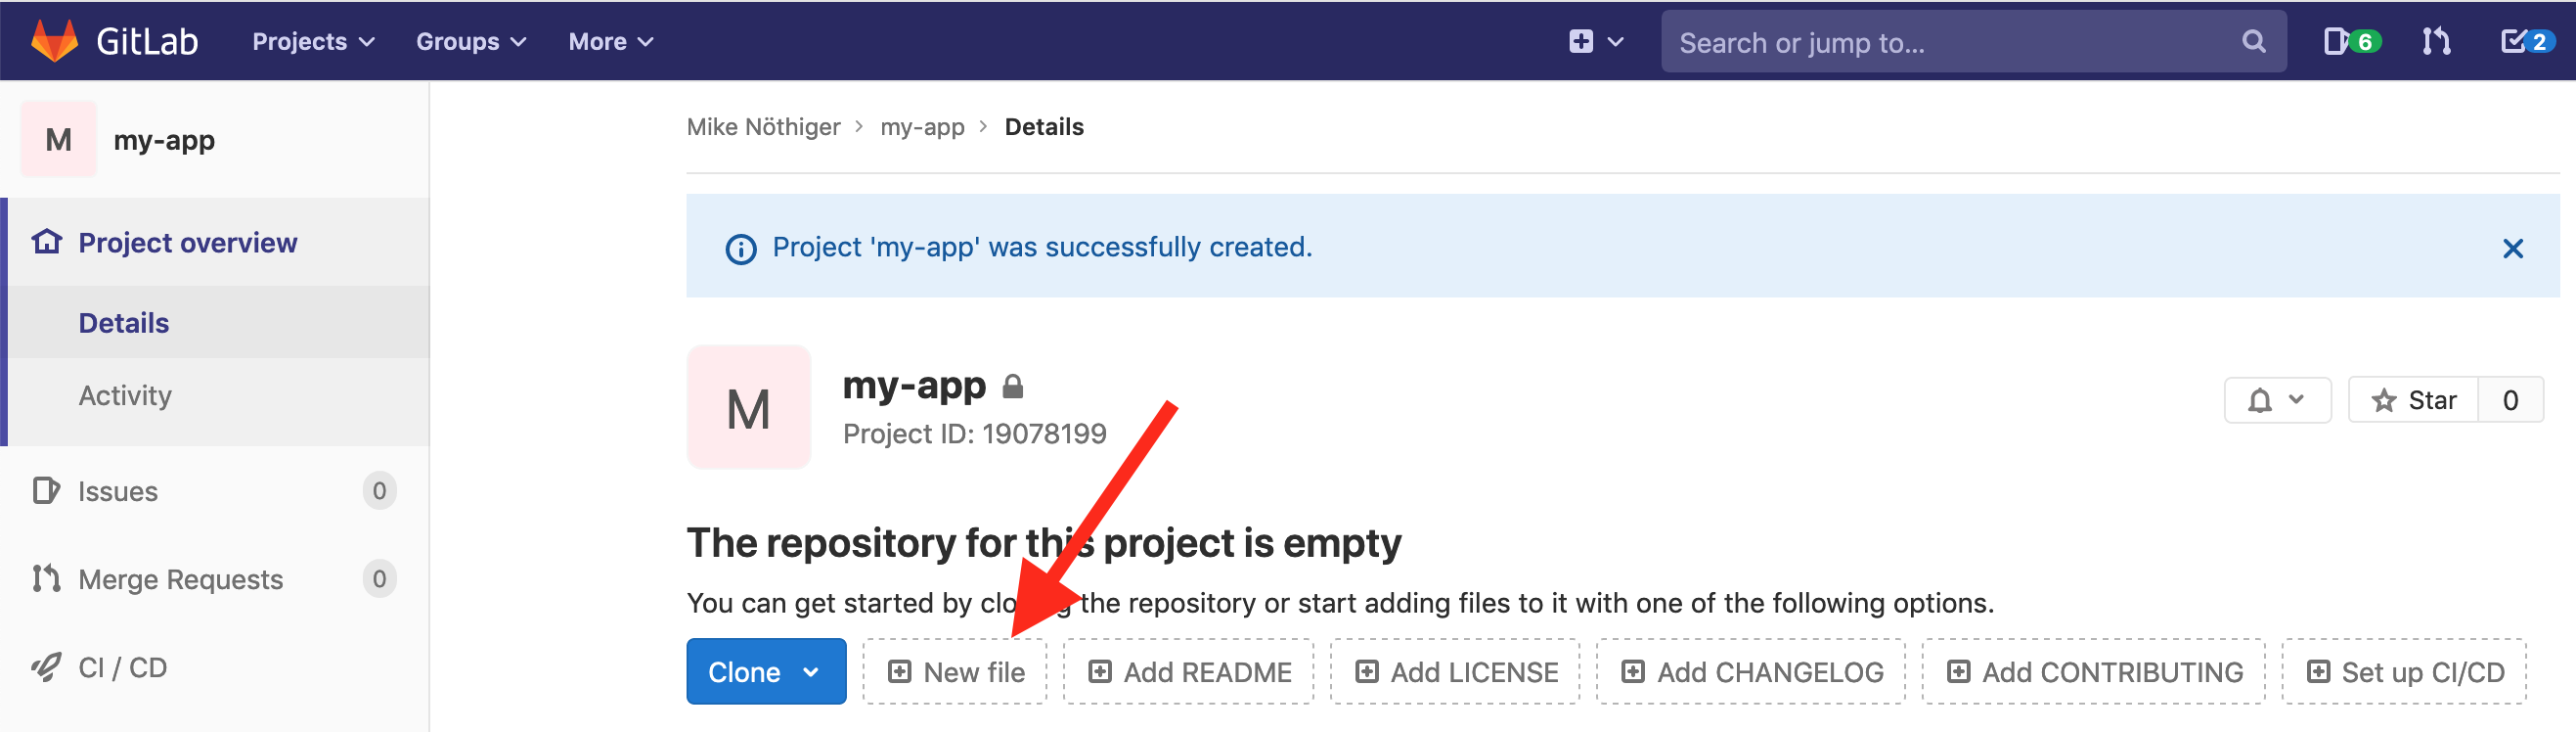 The new file button on the project overview page